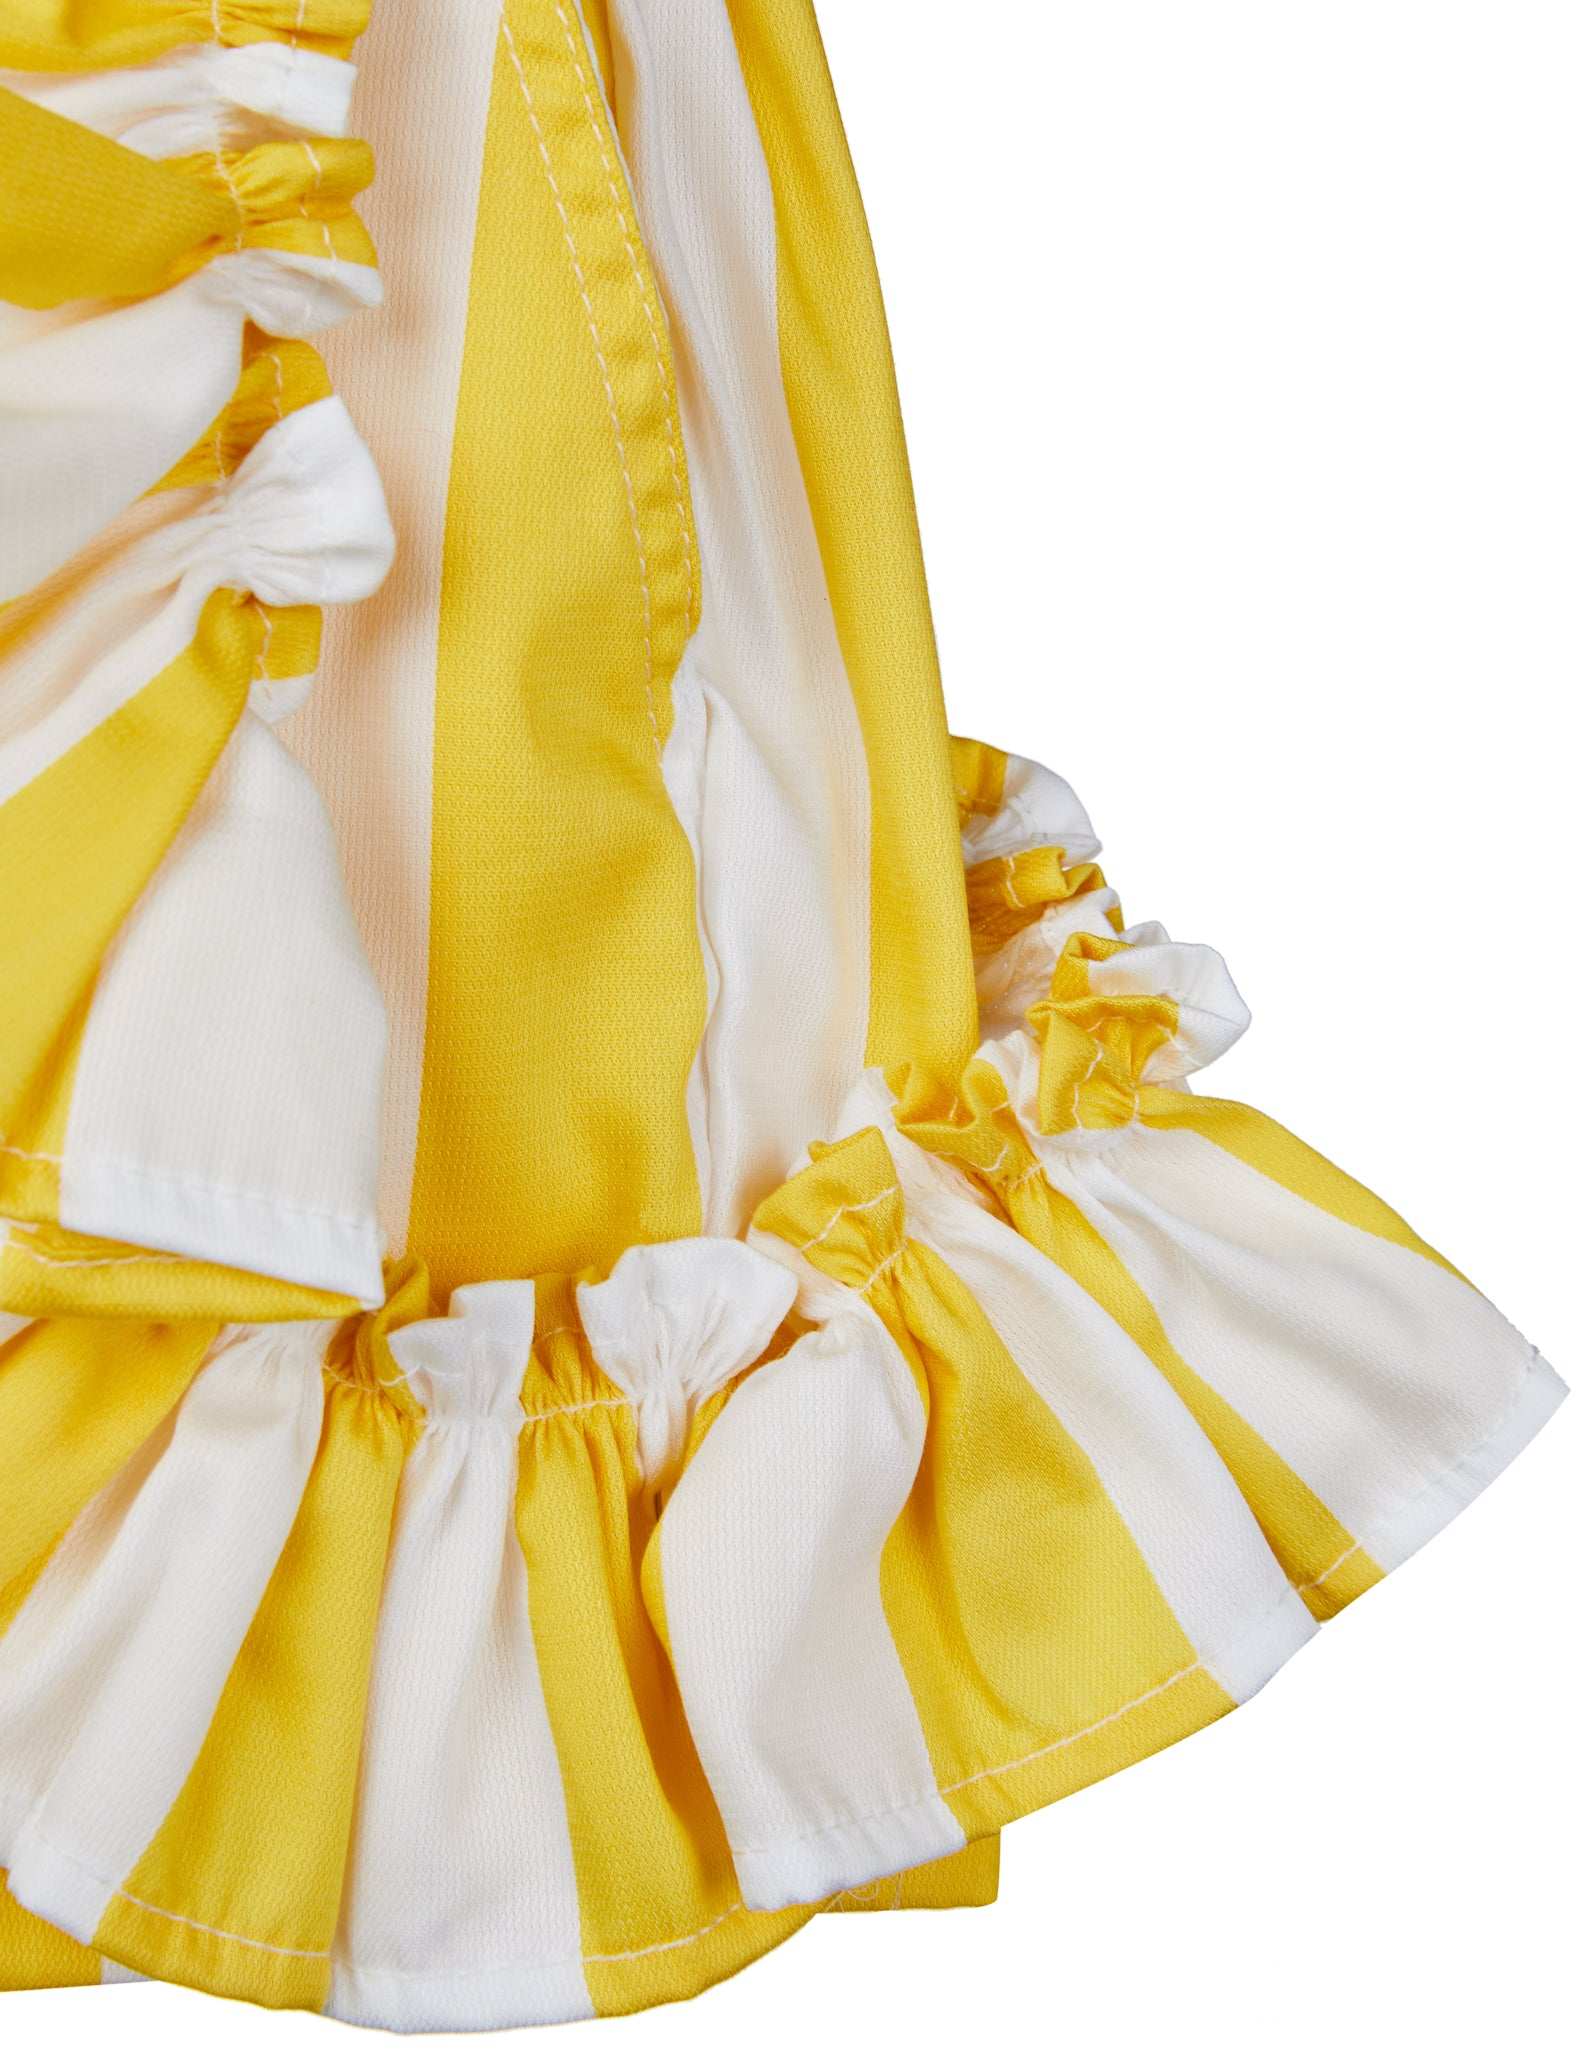 FRILL SHORTS IN YELLOW AND WHITE